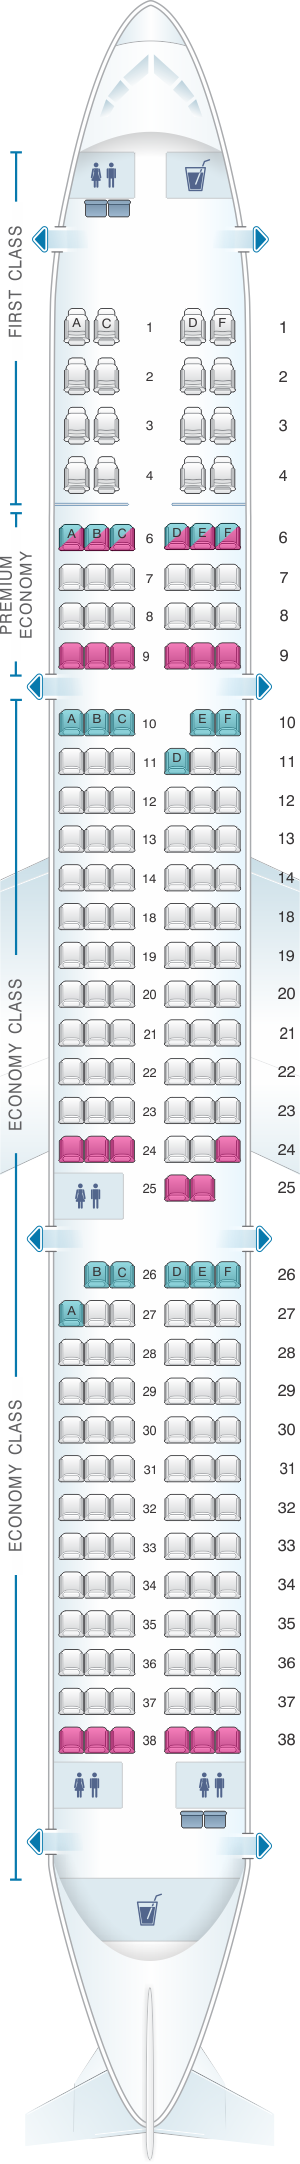 Seat map for Alaska Airlines - Horizon Air Airbus A321 NEO retrofit